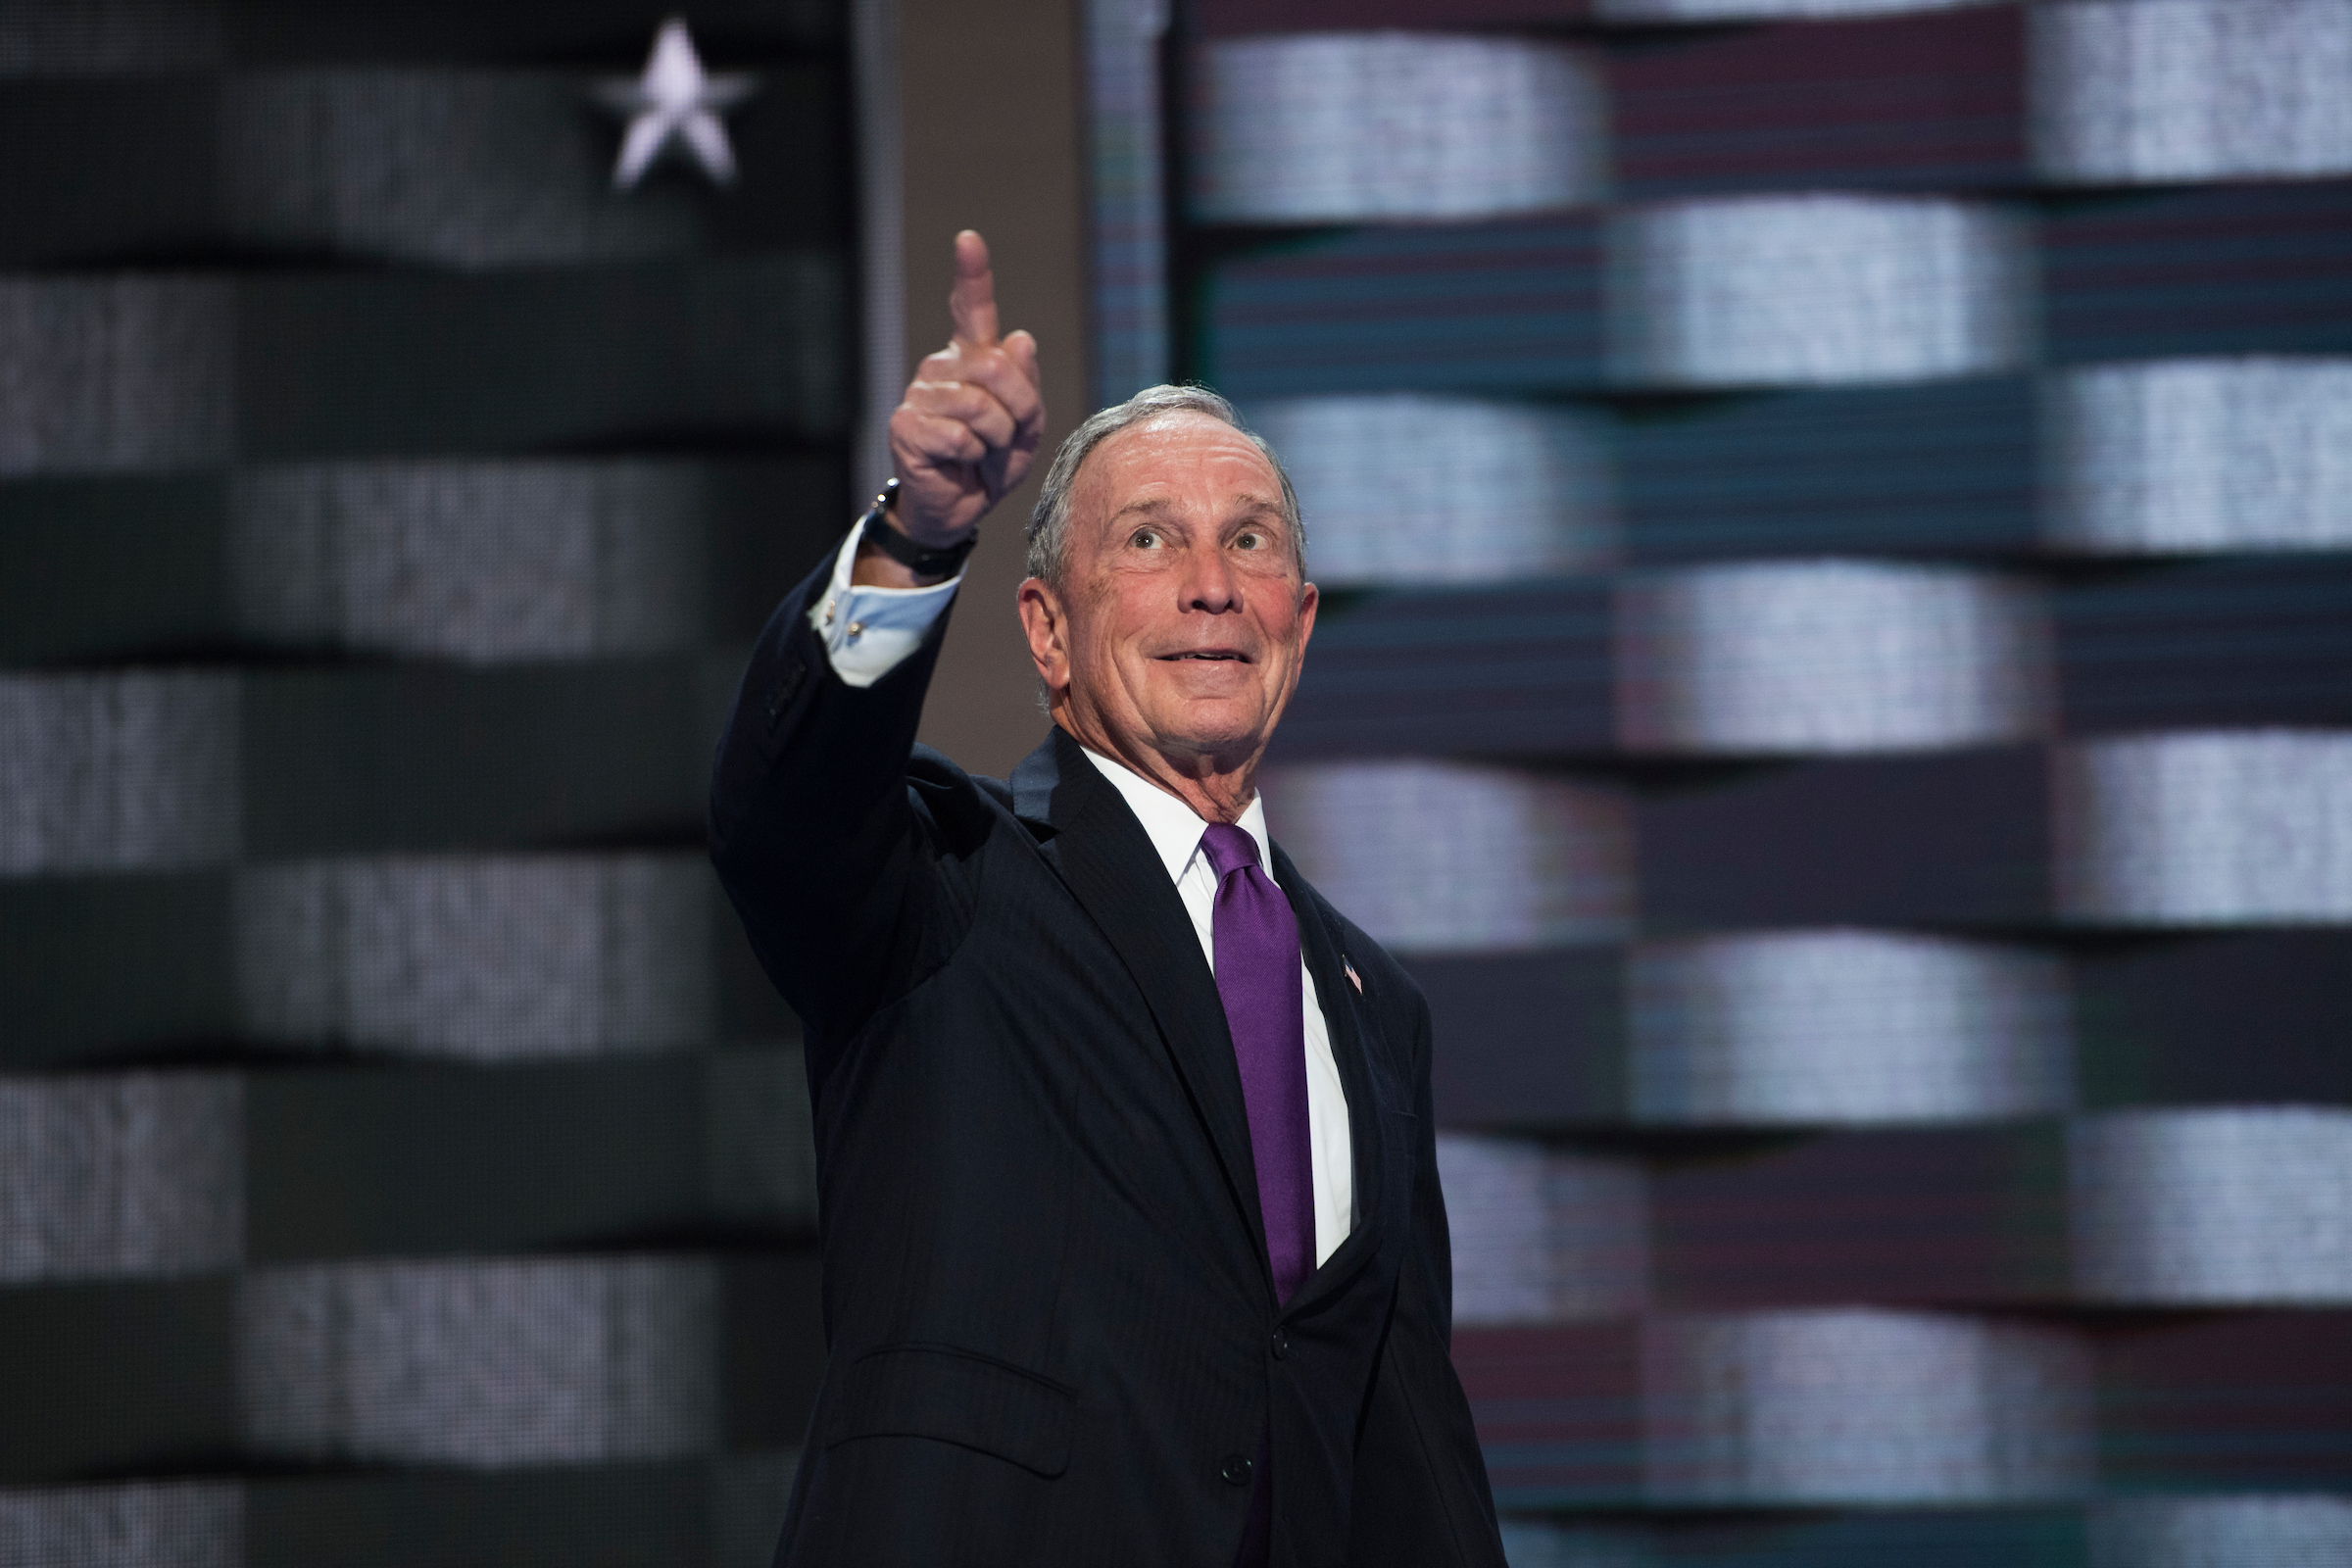 UNITED STATES - JULY 27: Michael Bloomberg appears on stage at the Wells Fargo Center in Philadelphia, Pa., after the VP spoke on the third day of the Democratic National Convention, July 27, 2016. (Photo By Tom Williams/CQ Roll Call)